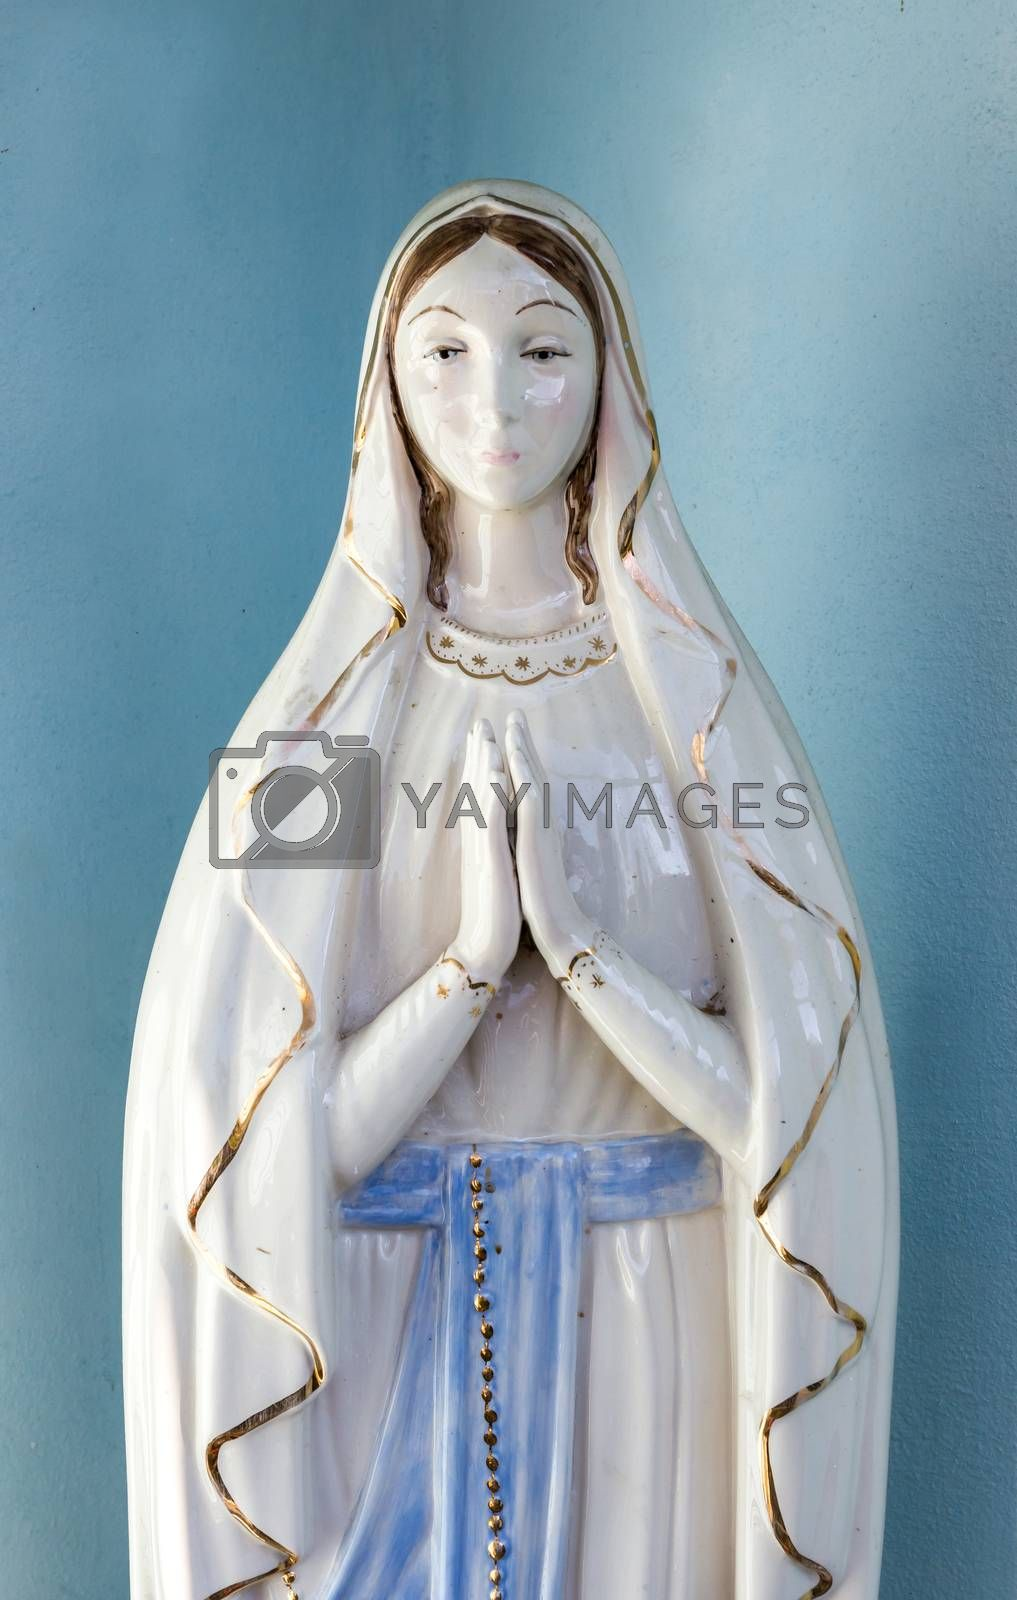 Virgin Mary statue by KYNA STUDIO